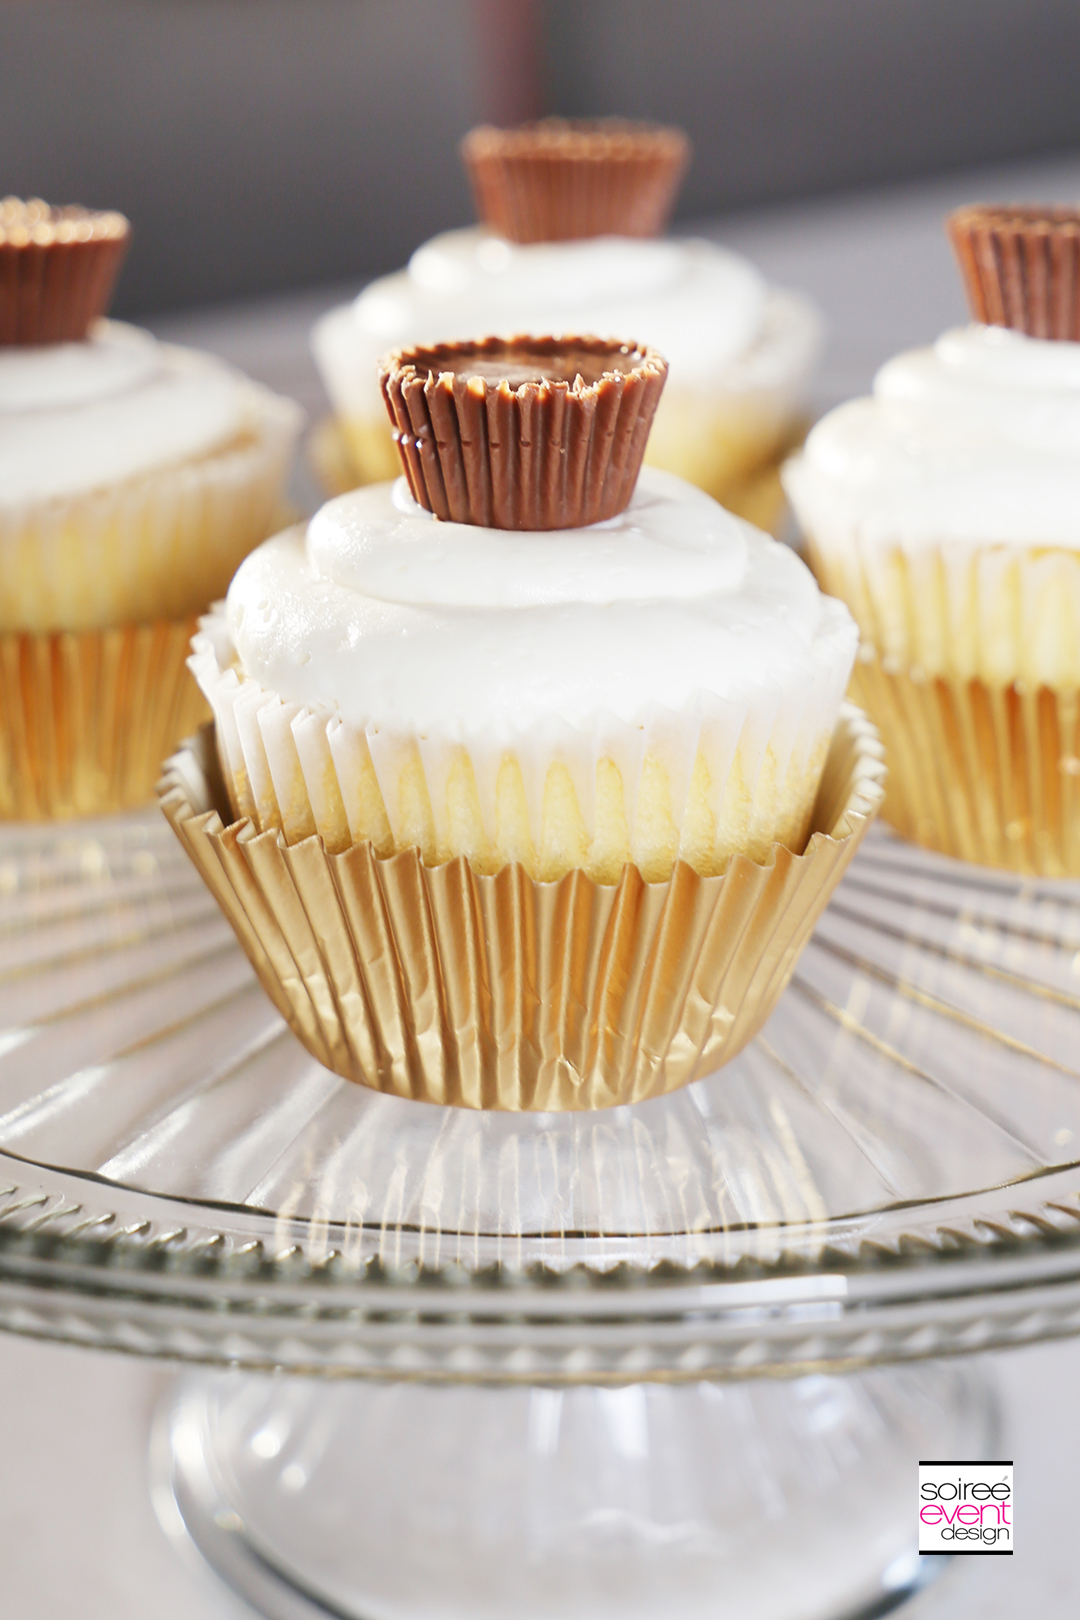 REESE'S Peanut Butter Cup Cupcakes - Step 11